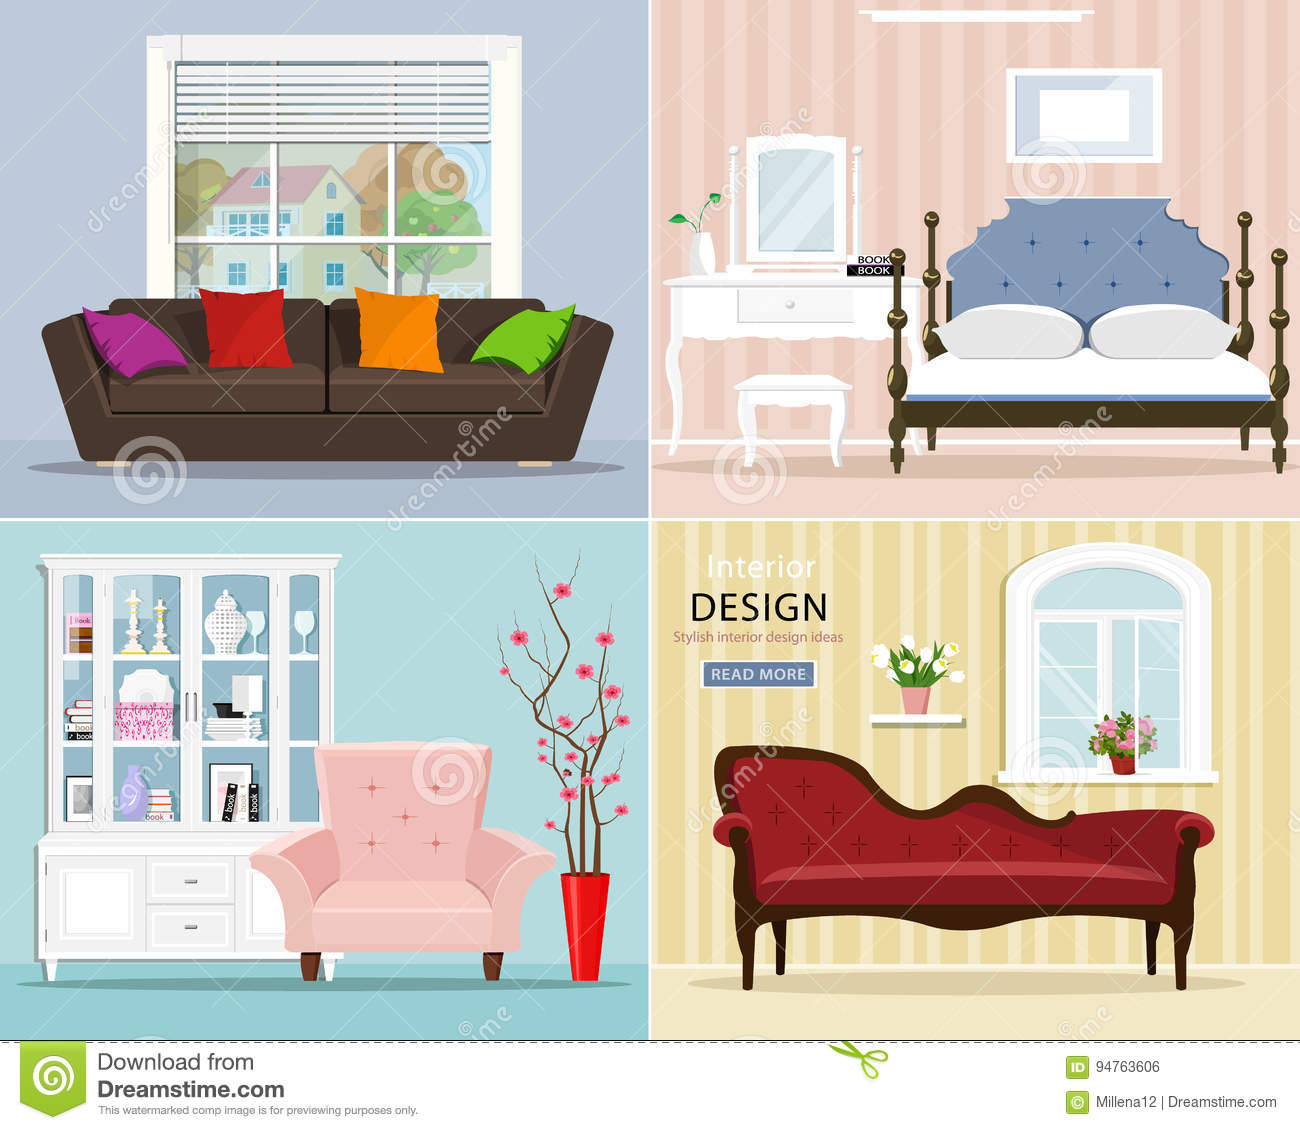 Stylish Graphic Room Set: Bedroom With Bed And Night Table